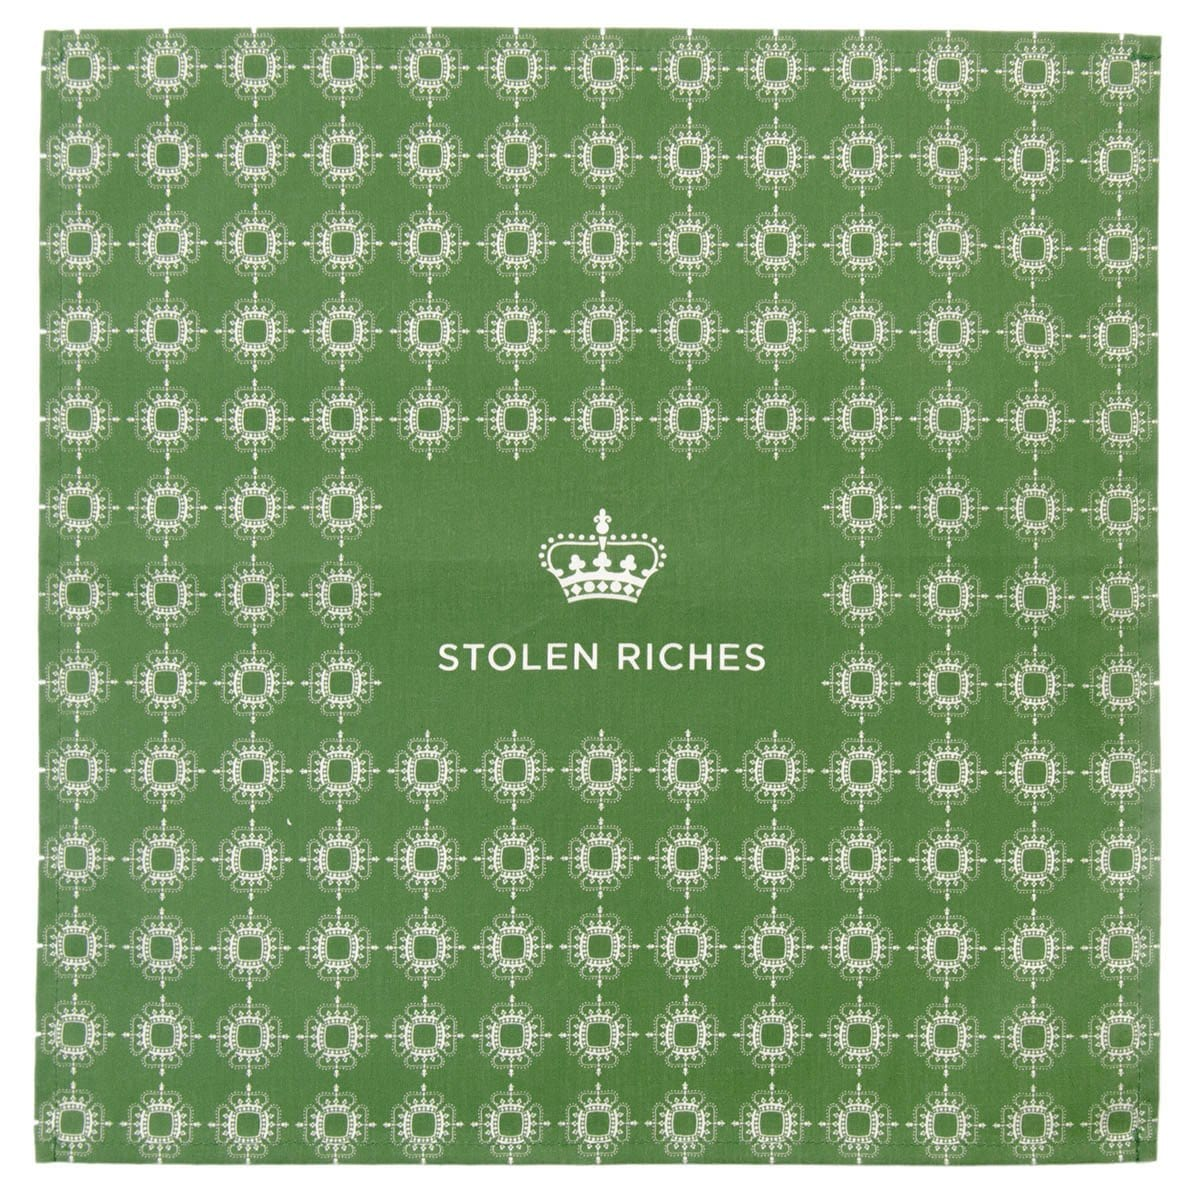 "Moville Green - Crown Pattern Pocket Square (13""x13"") - Stolen Riches"